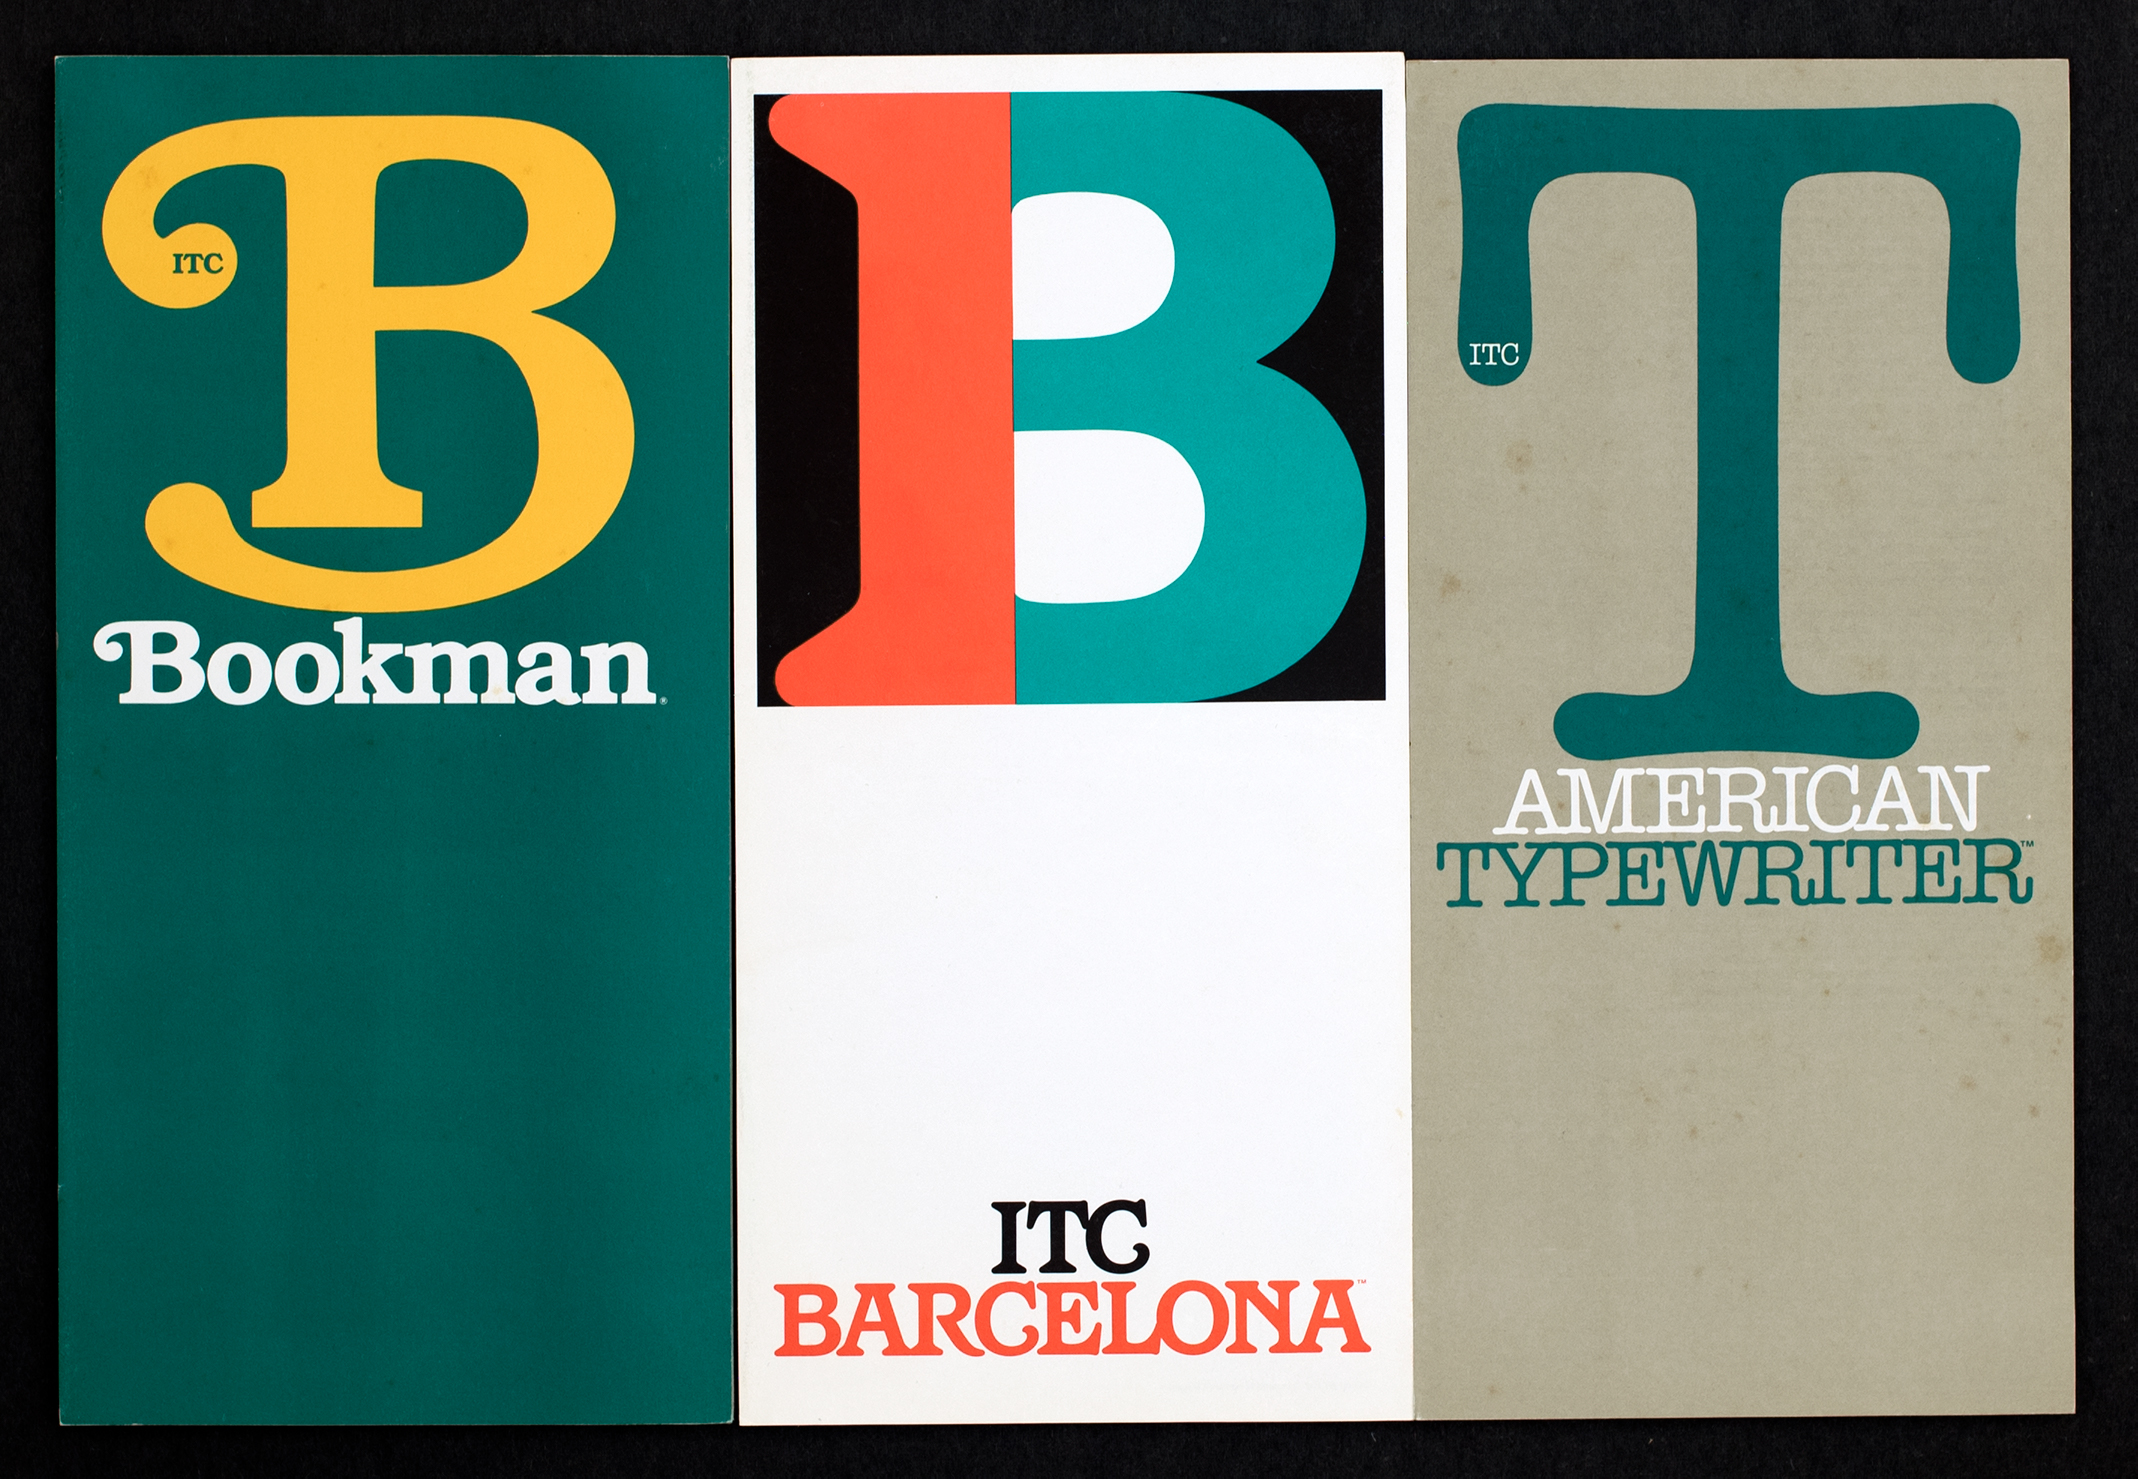 covers of specimen books for Bookman, Barcelona, and American Typewriter typefaces